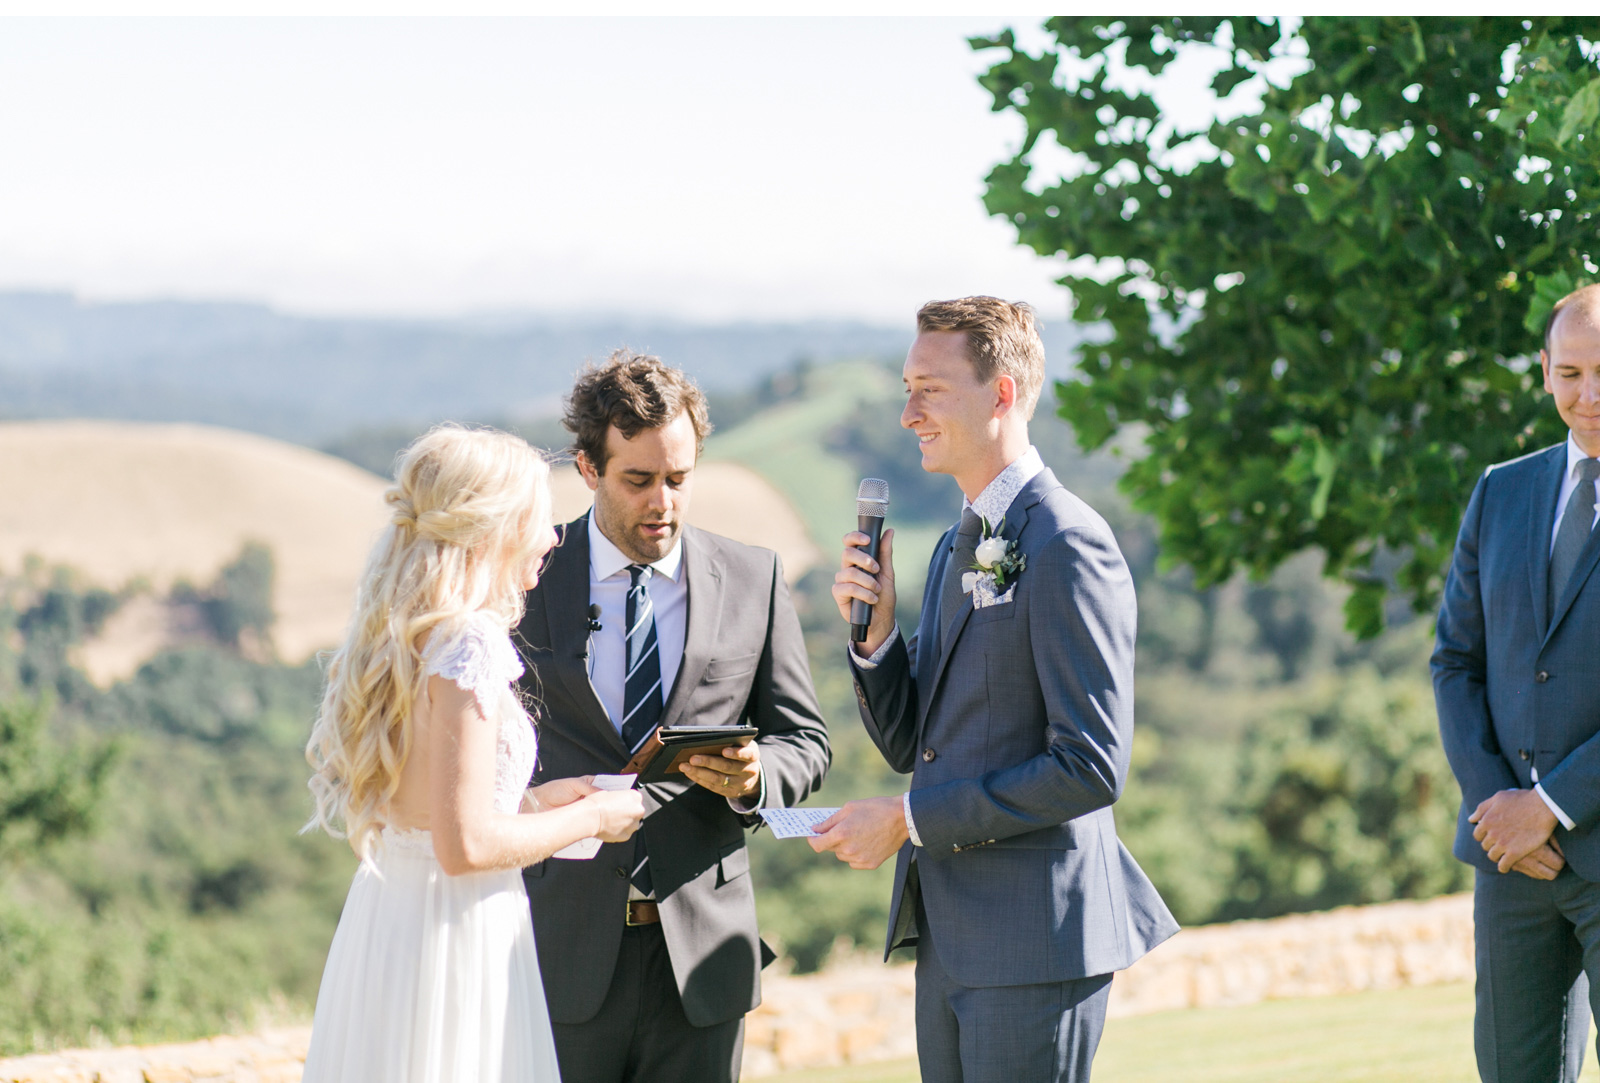 Paso-Robles-Style-Me-Pretty-The-Knot-Wedding-Natalie-Schutt-Photography's-Wedding_13.jpg